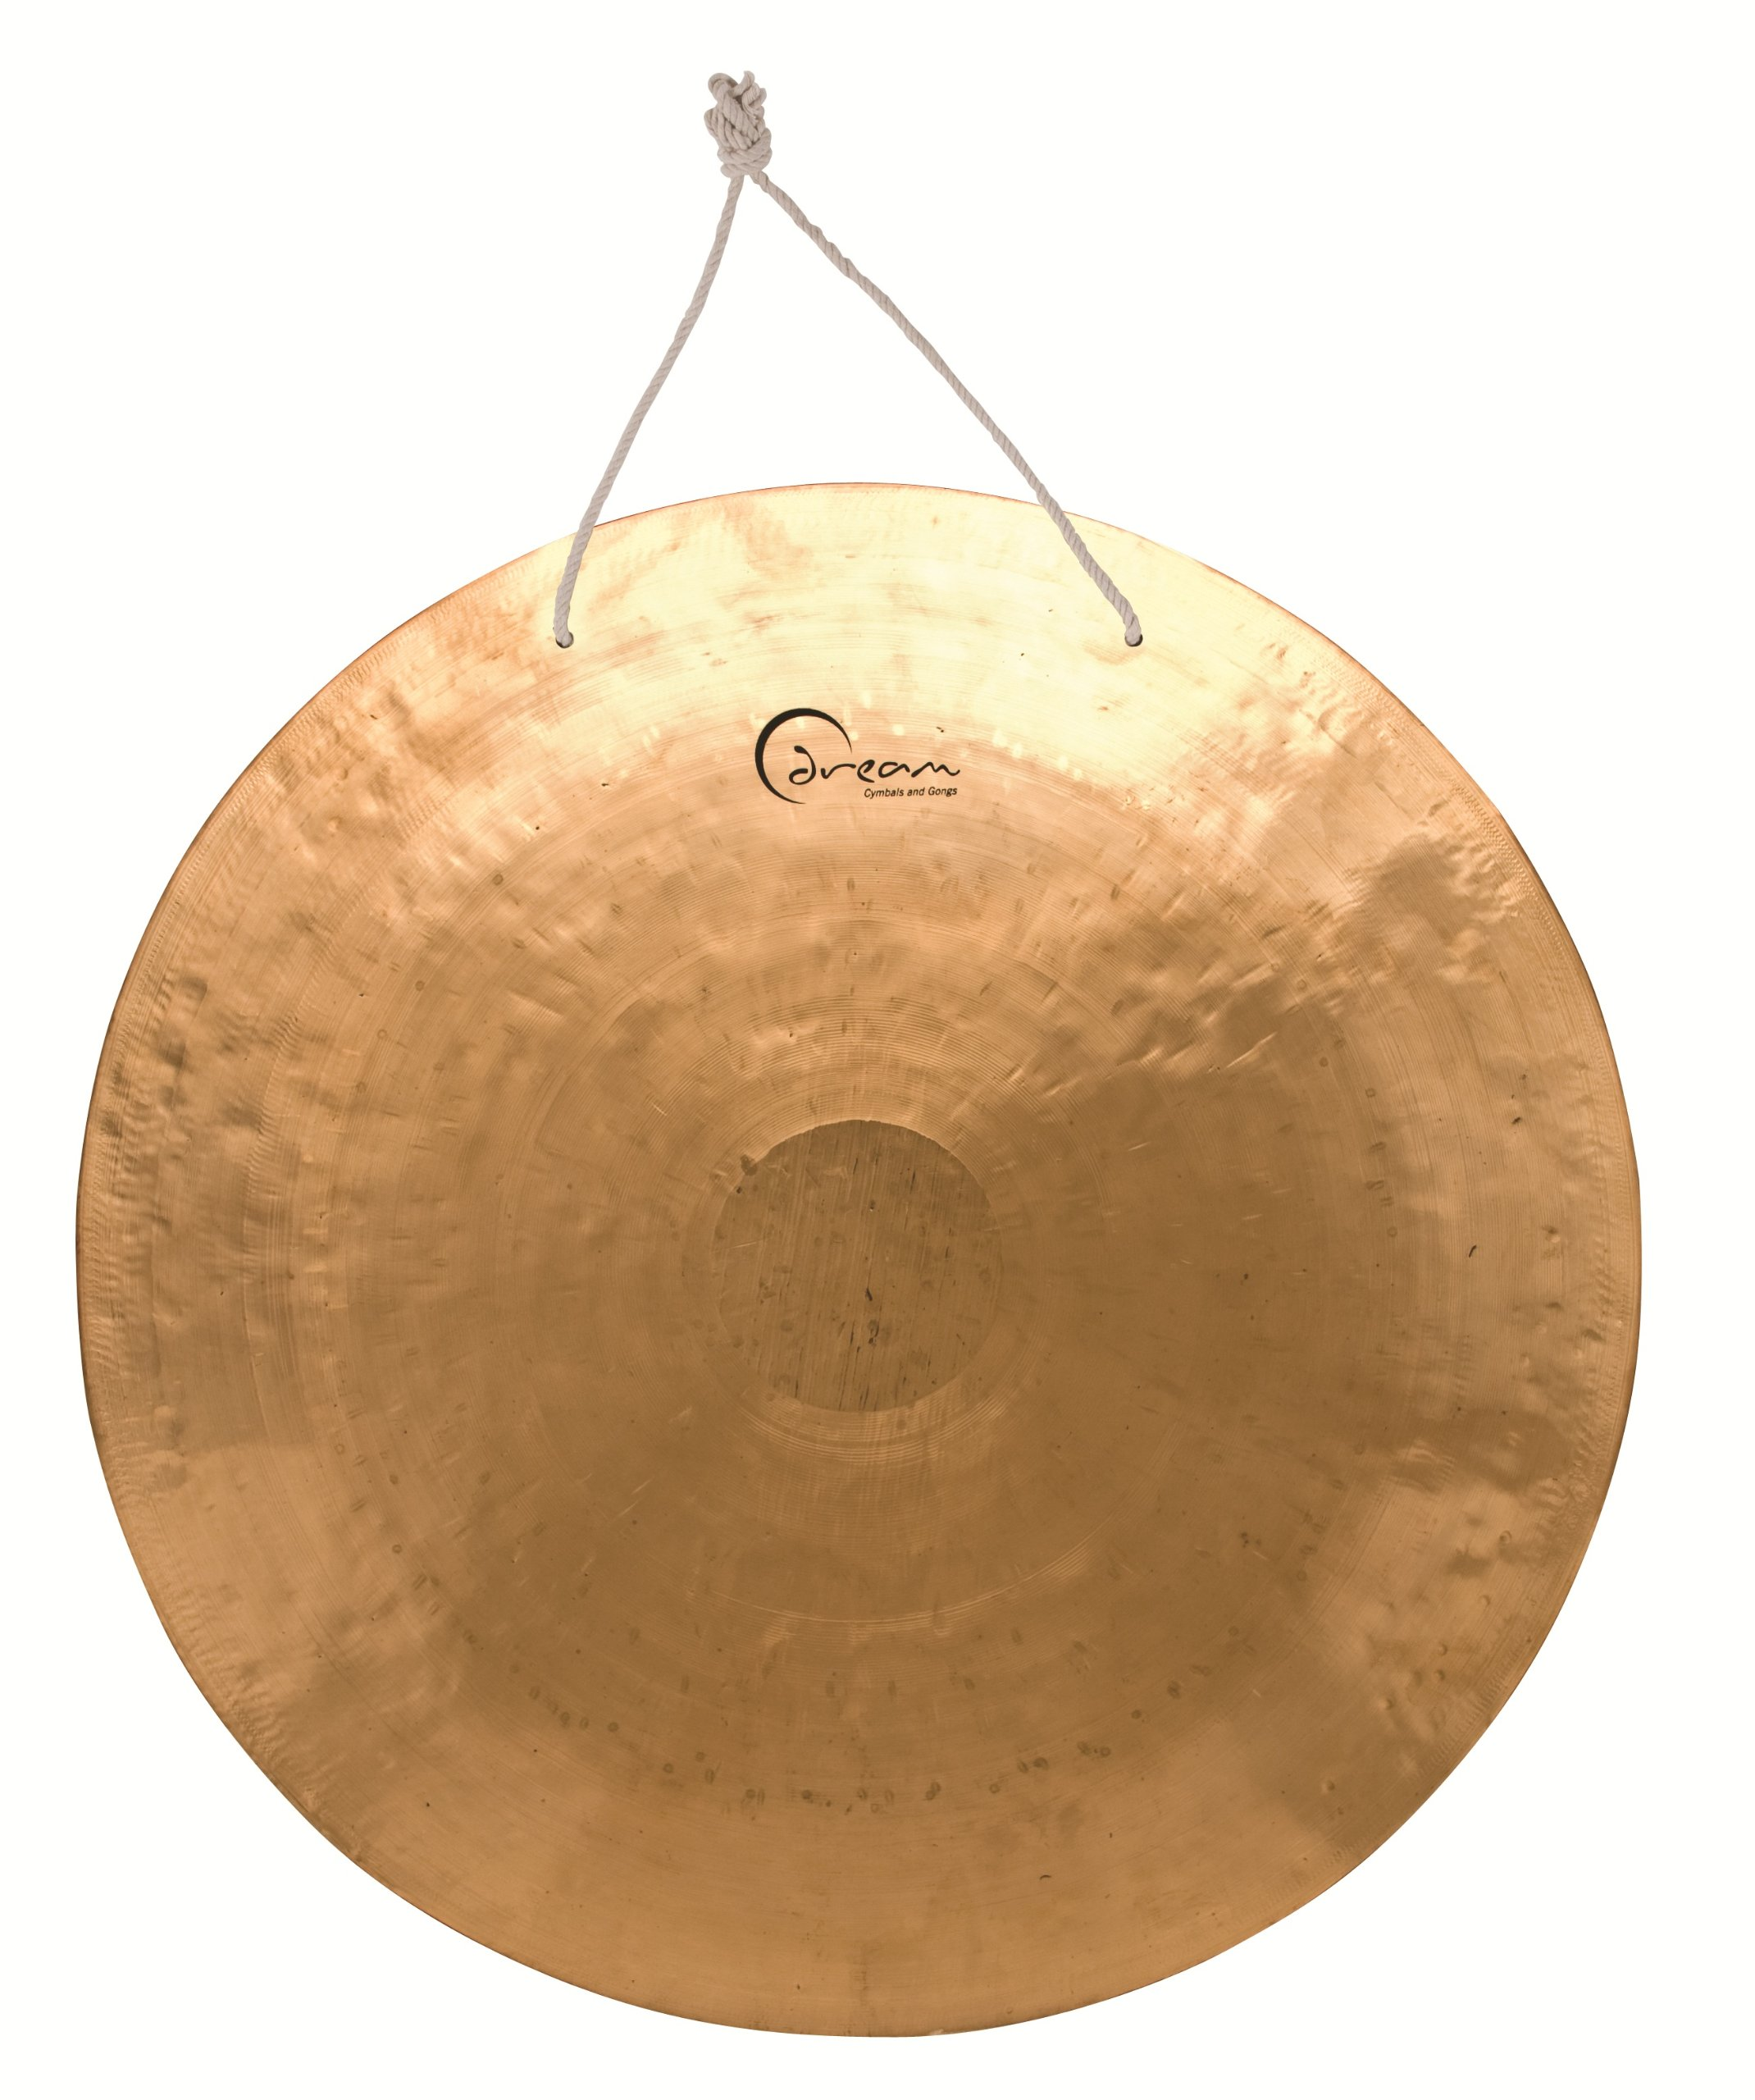 Dream FENG22 22'' Feng (Wind) Gong by Dream